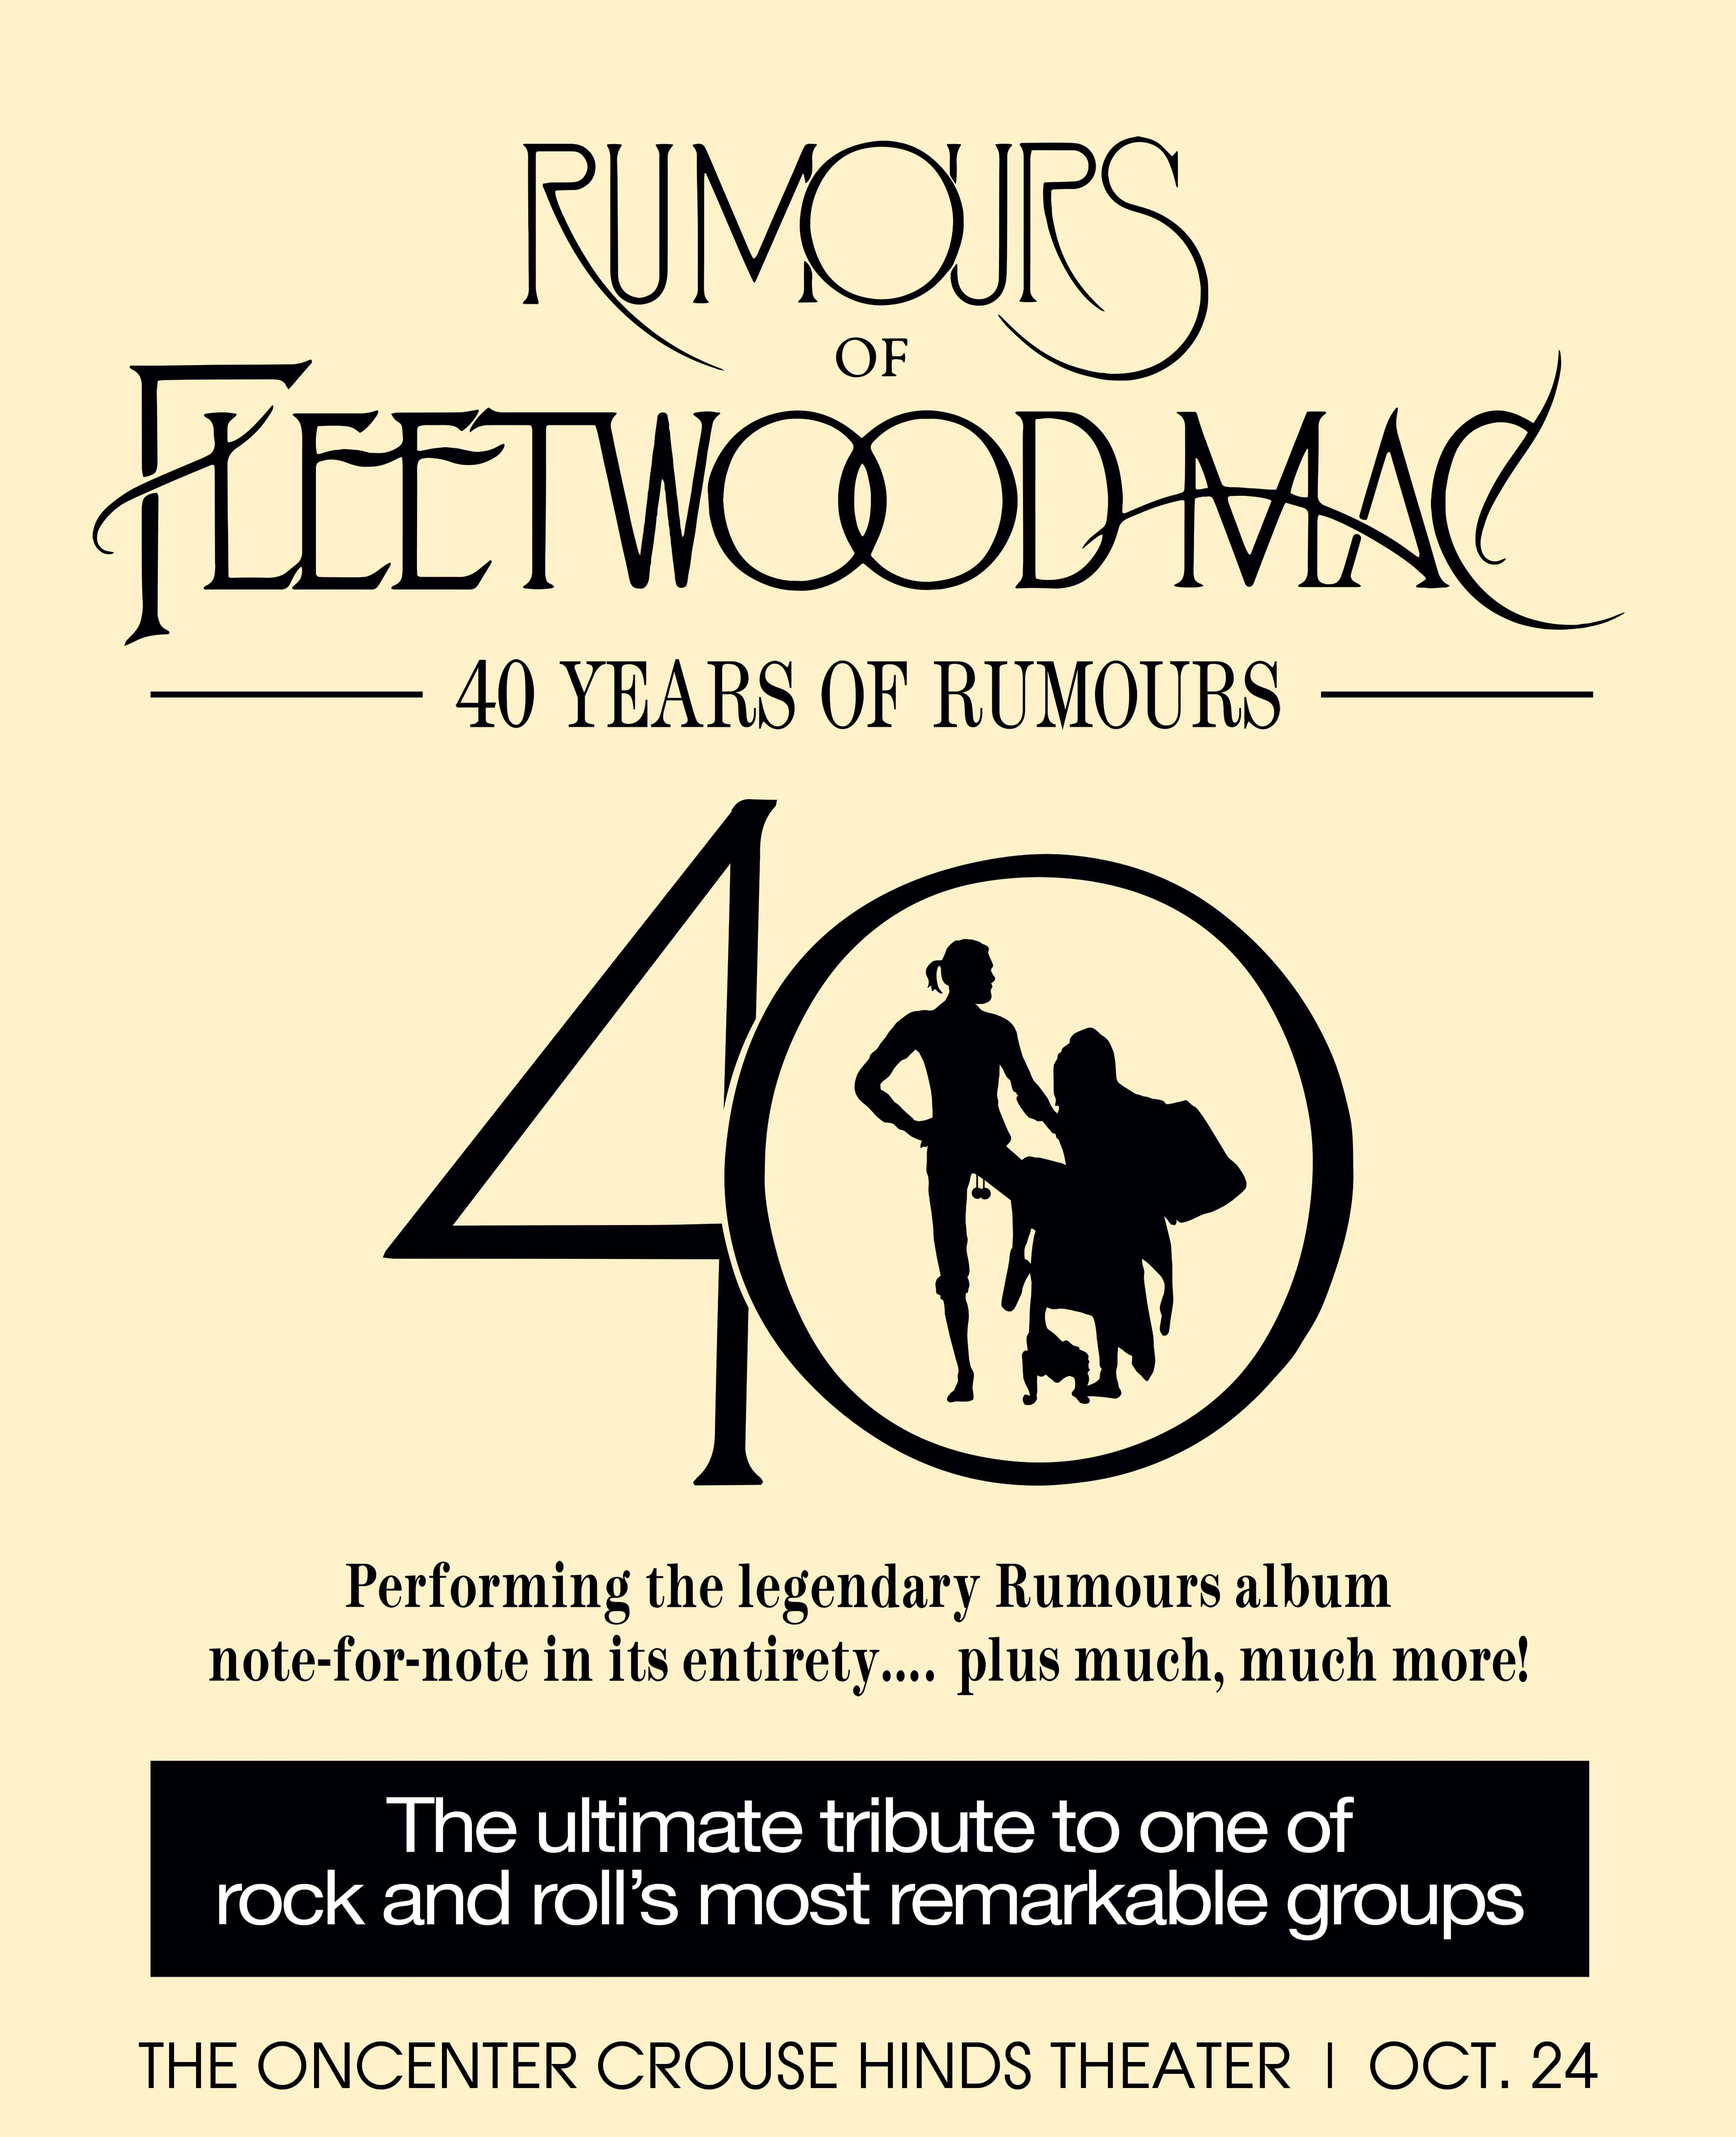 Rumours of Fleetwood Mac at the Crouse Hinds Theater